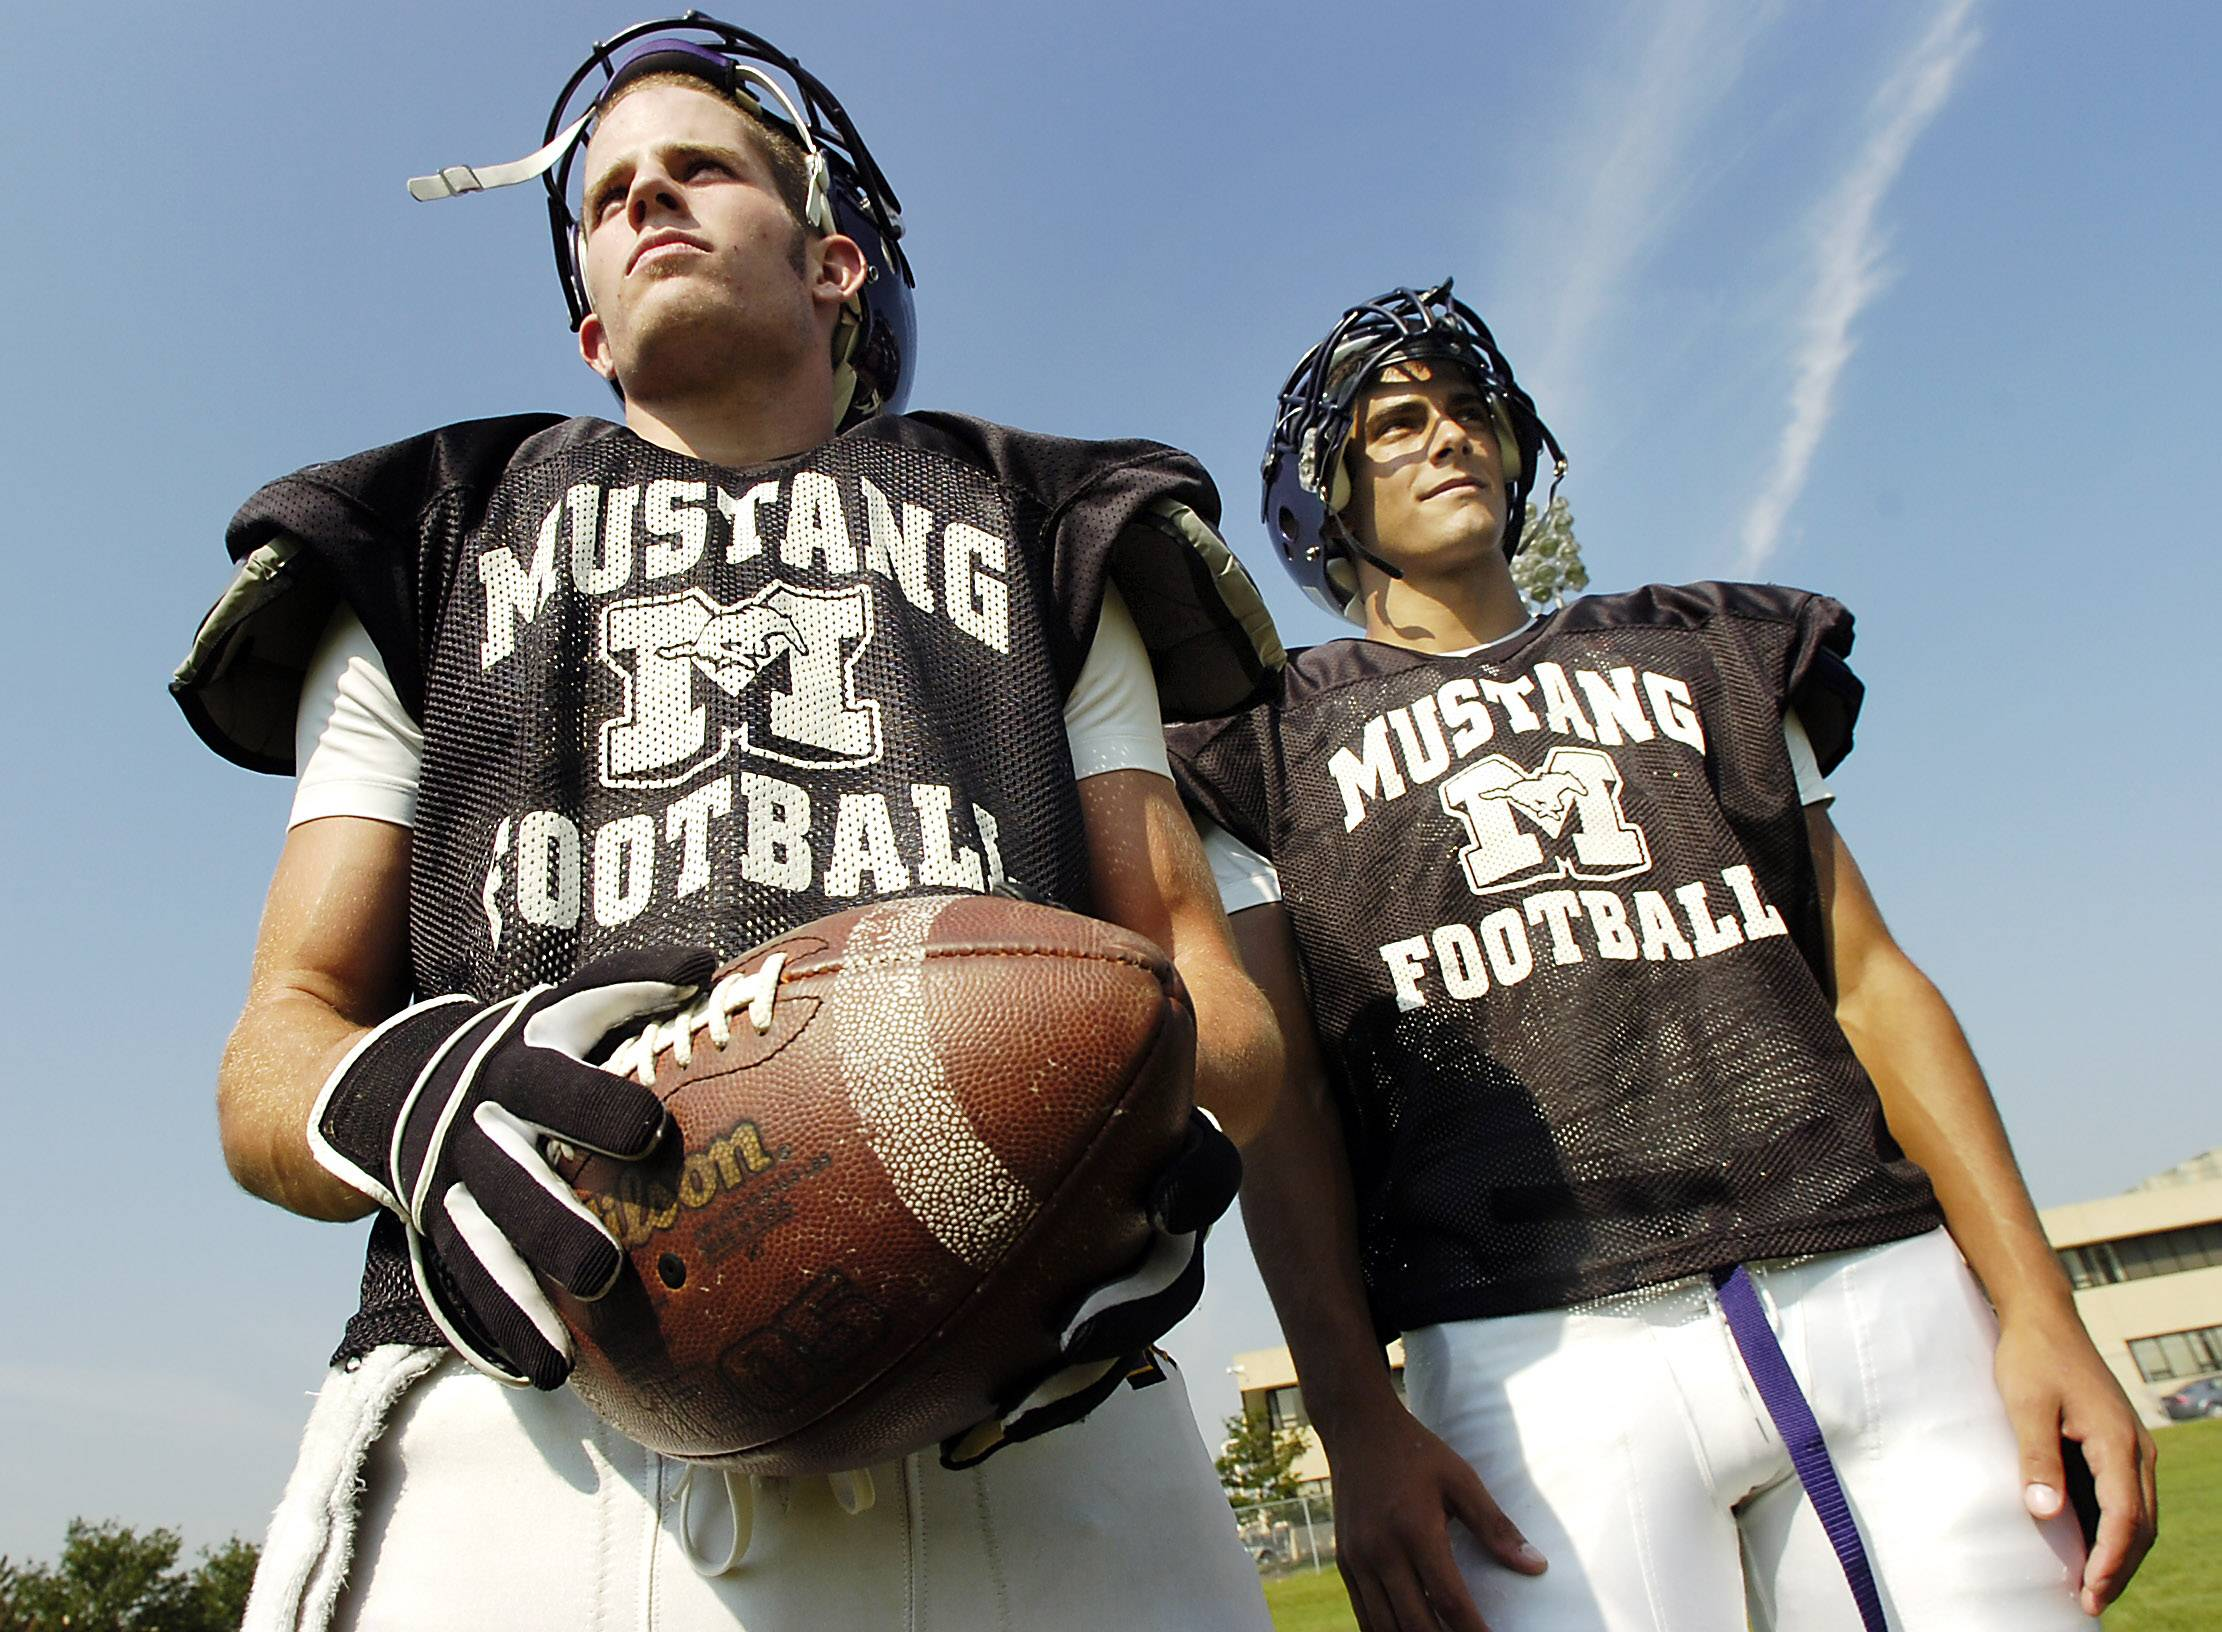 Wide receiver #84 Mick Viken (left) and Jimmy Garoppolo at a Rolling Meadows practice.